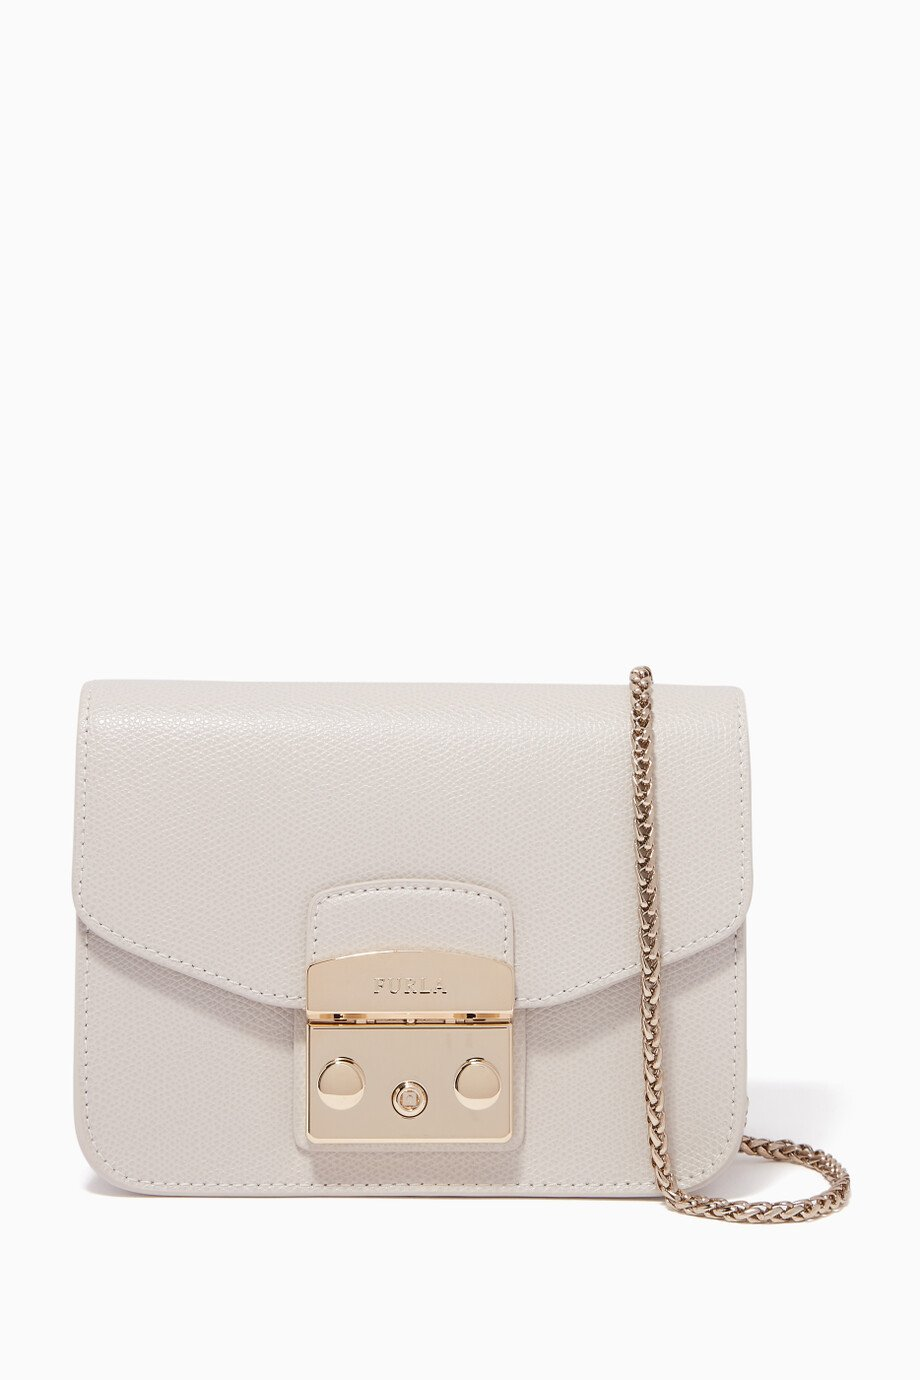 5a30633e2 Shop Furla White Perla-White Metropolis Mini Cross-Body Bag for ...